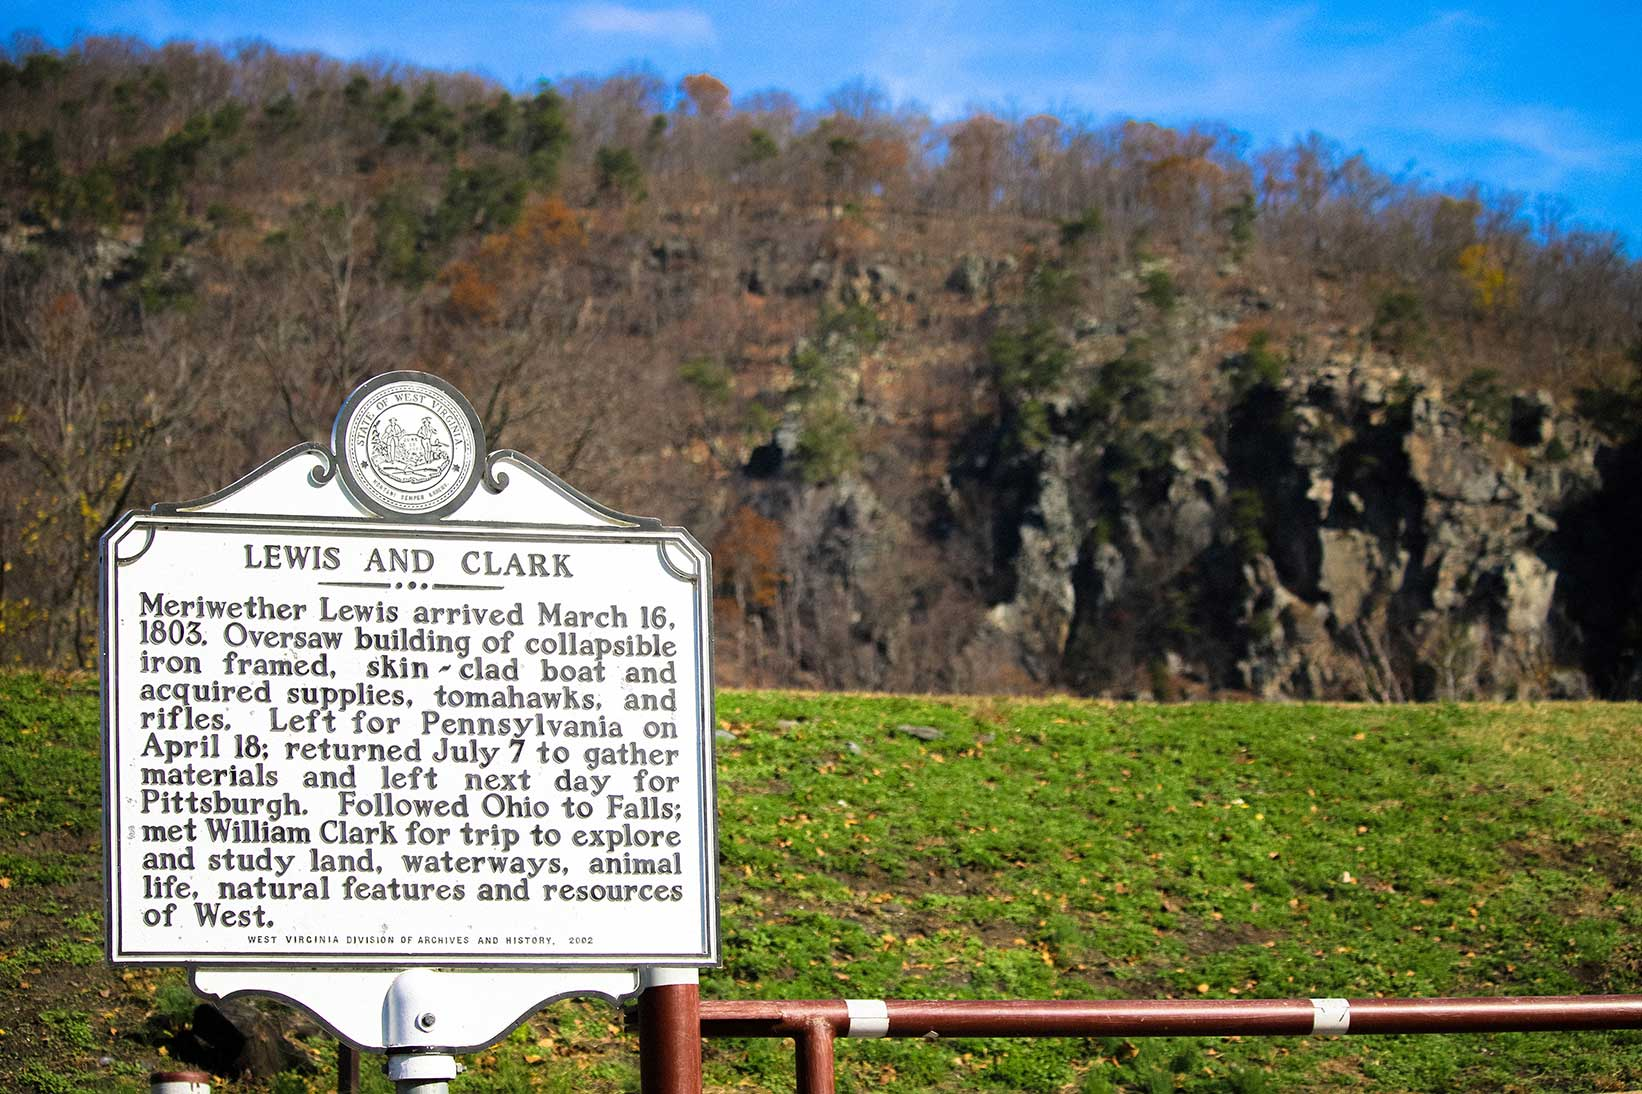 Lewis & Clark historical marker with mountains in background in Harper's Ferry, WV